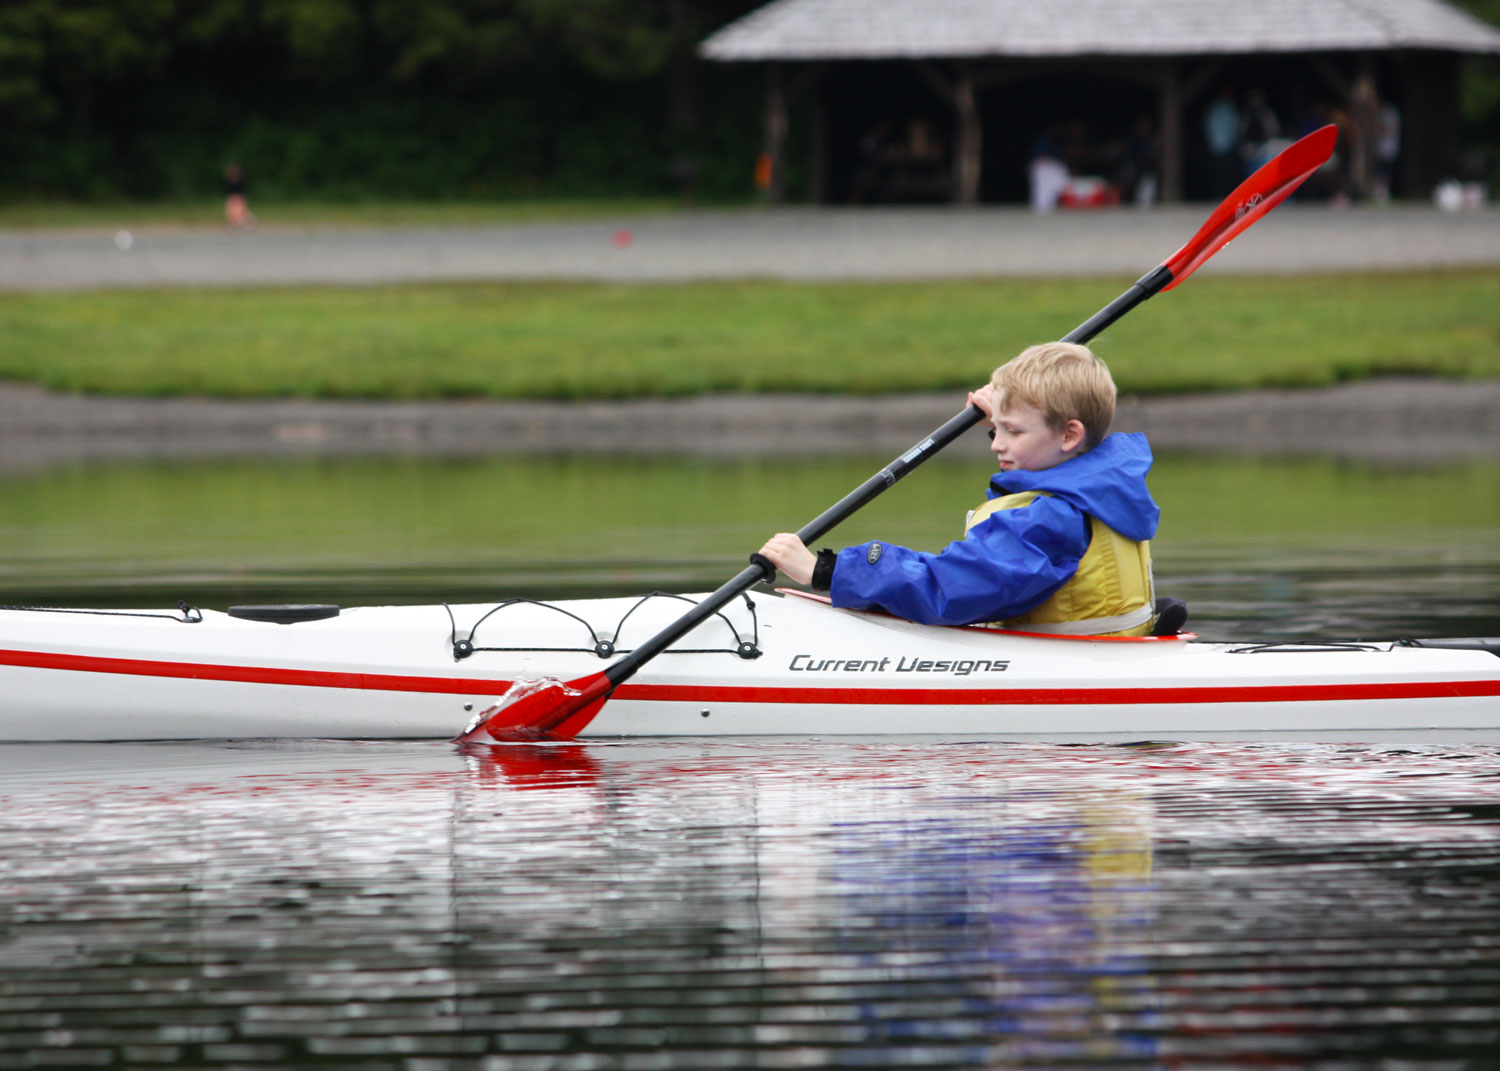 7 years old: kayaking on Ward Lake in Current Designs' Raven kids kayak.